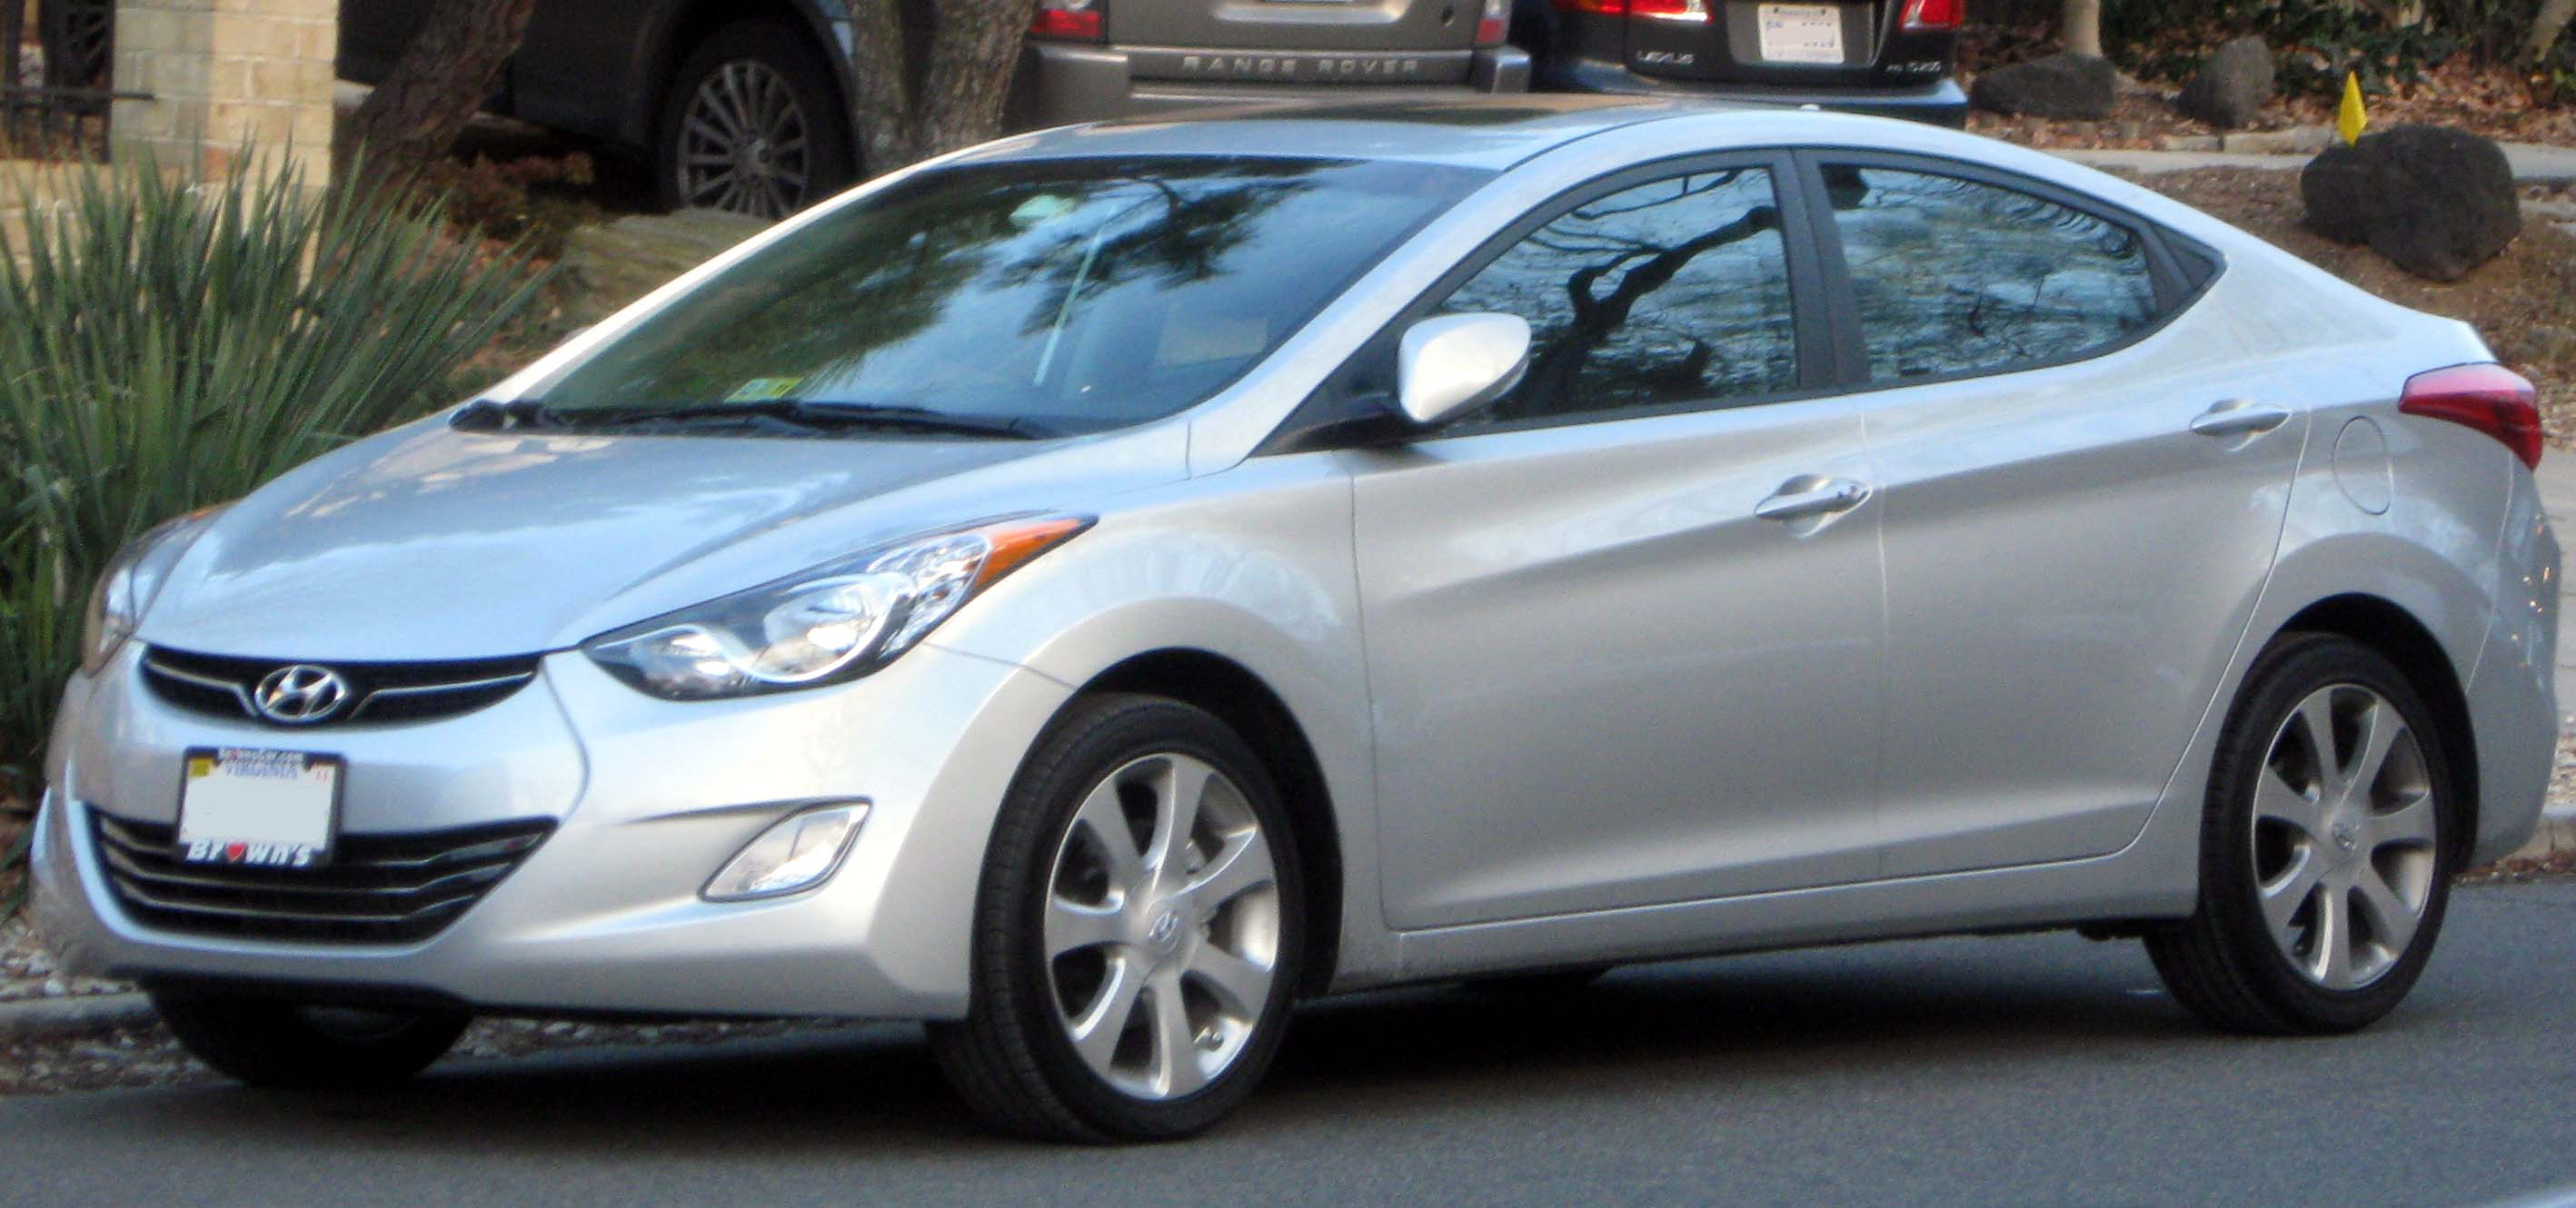 Description 2011 Hyundai Elantra Limited -- 01-04-2011.jpg